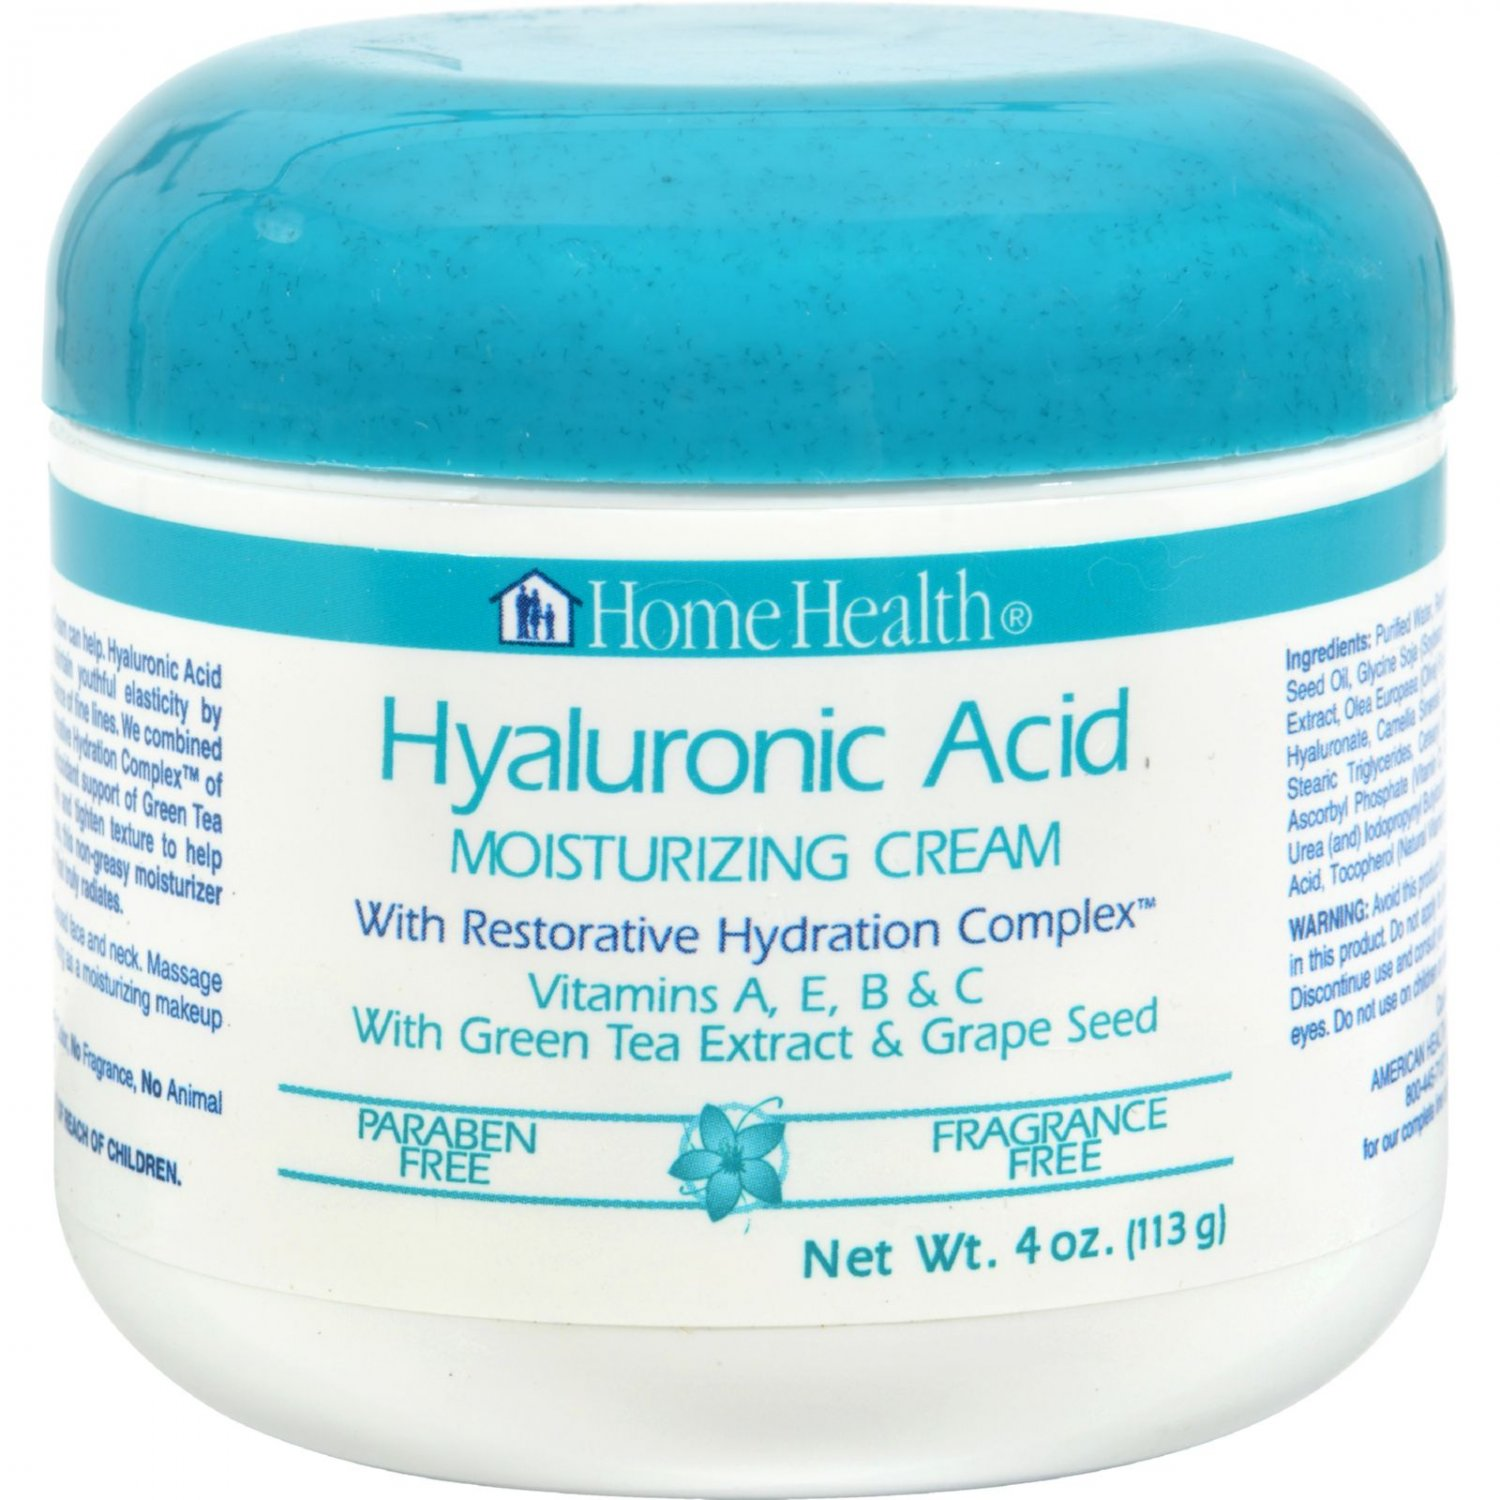 Home Health Hyaluronic Acid Moisturizing Cream - 4 oz